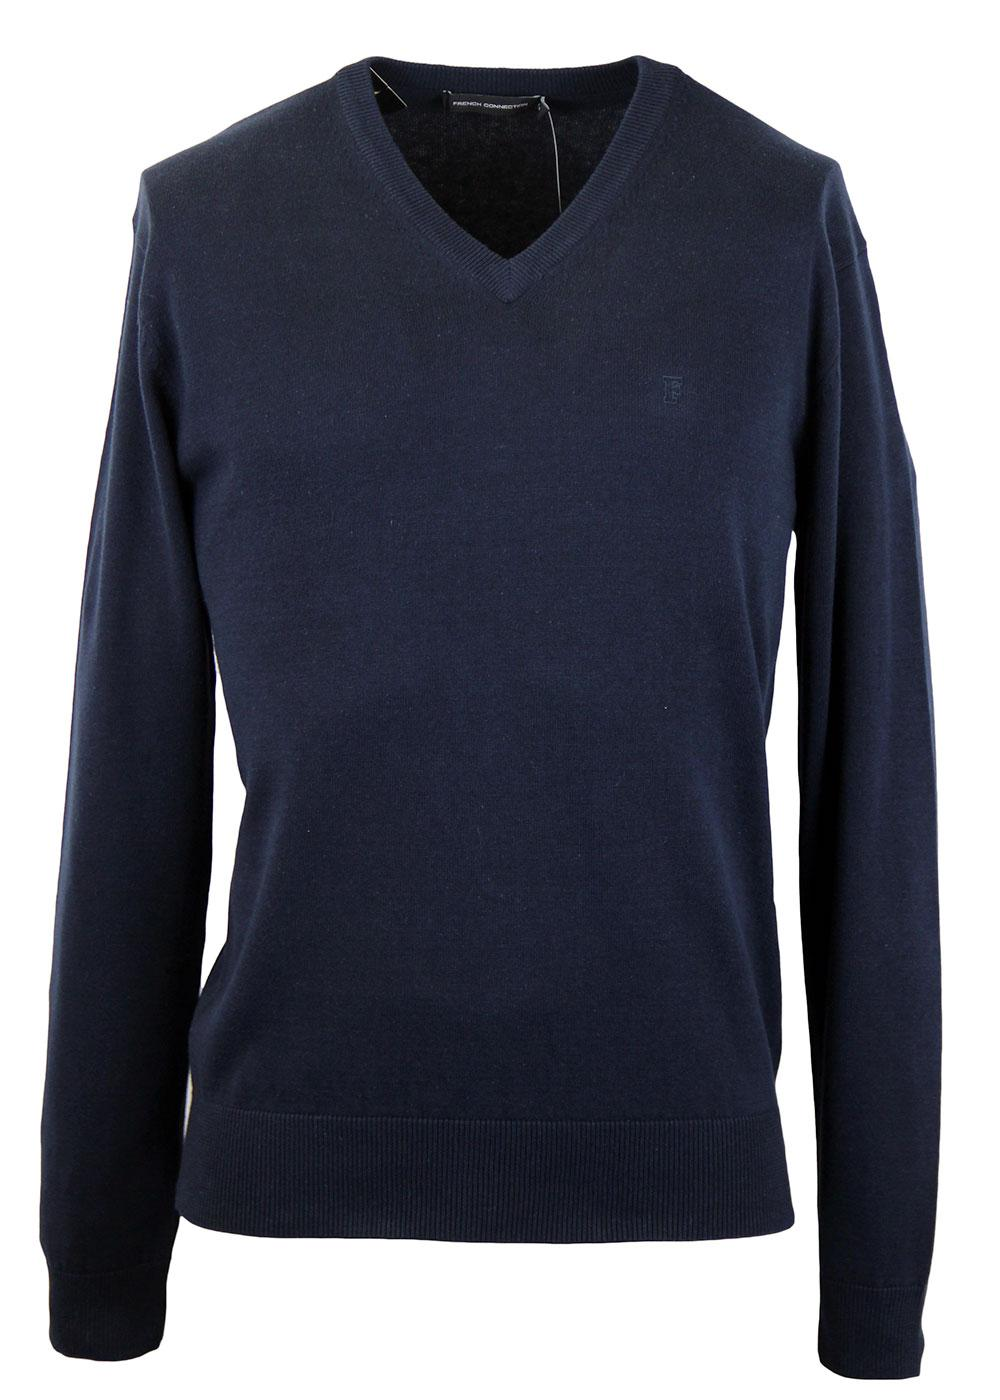 FRENCH CONNECTION Auderly Retro Mod V-Neck Jumper